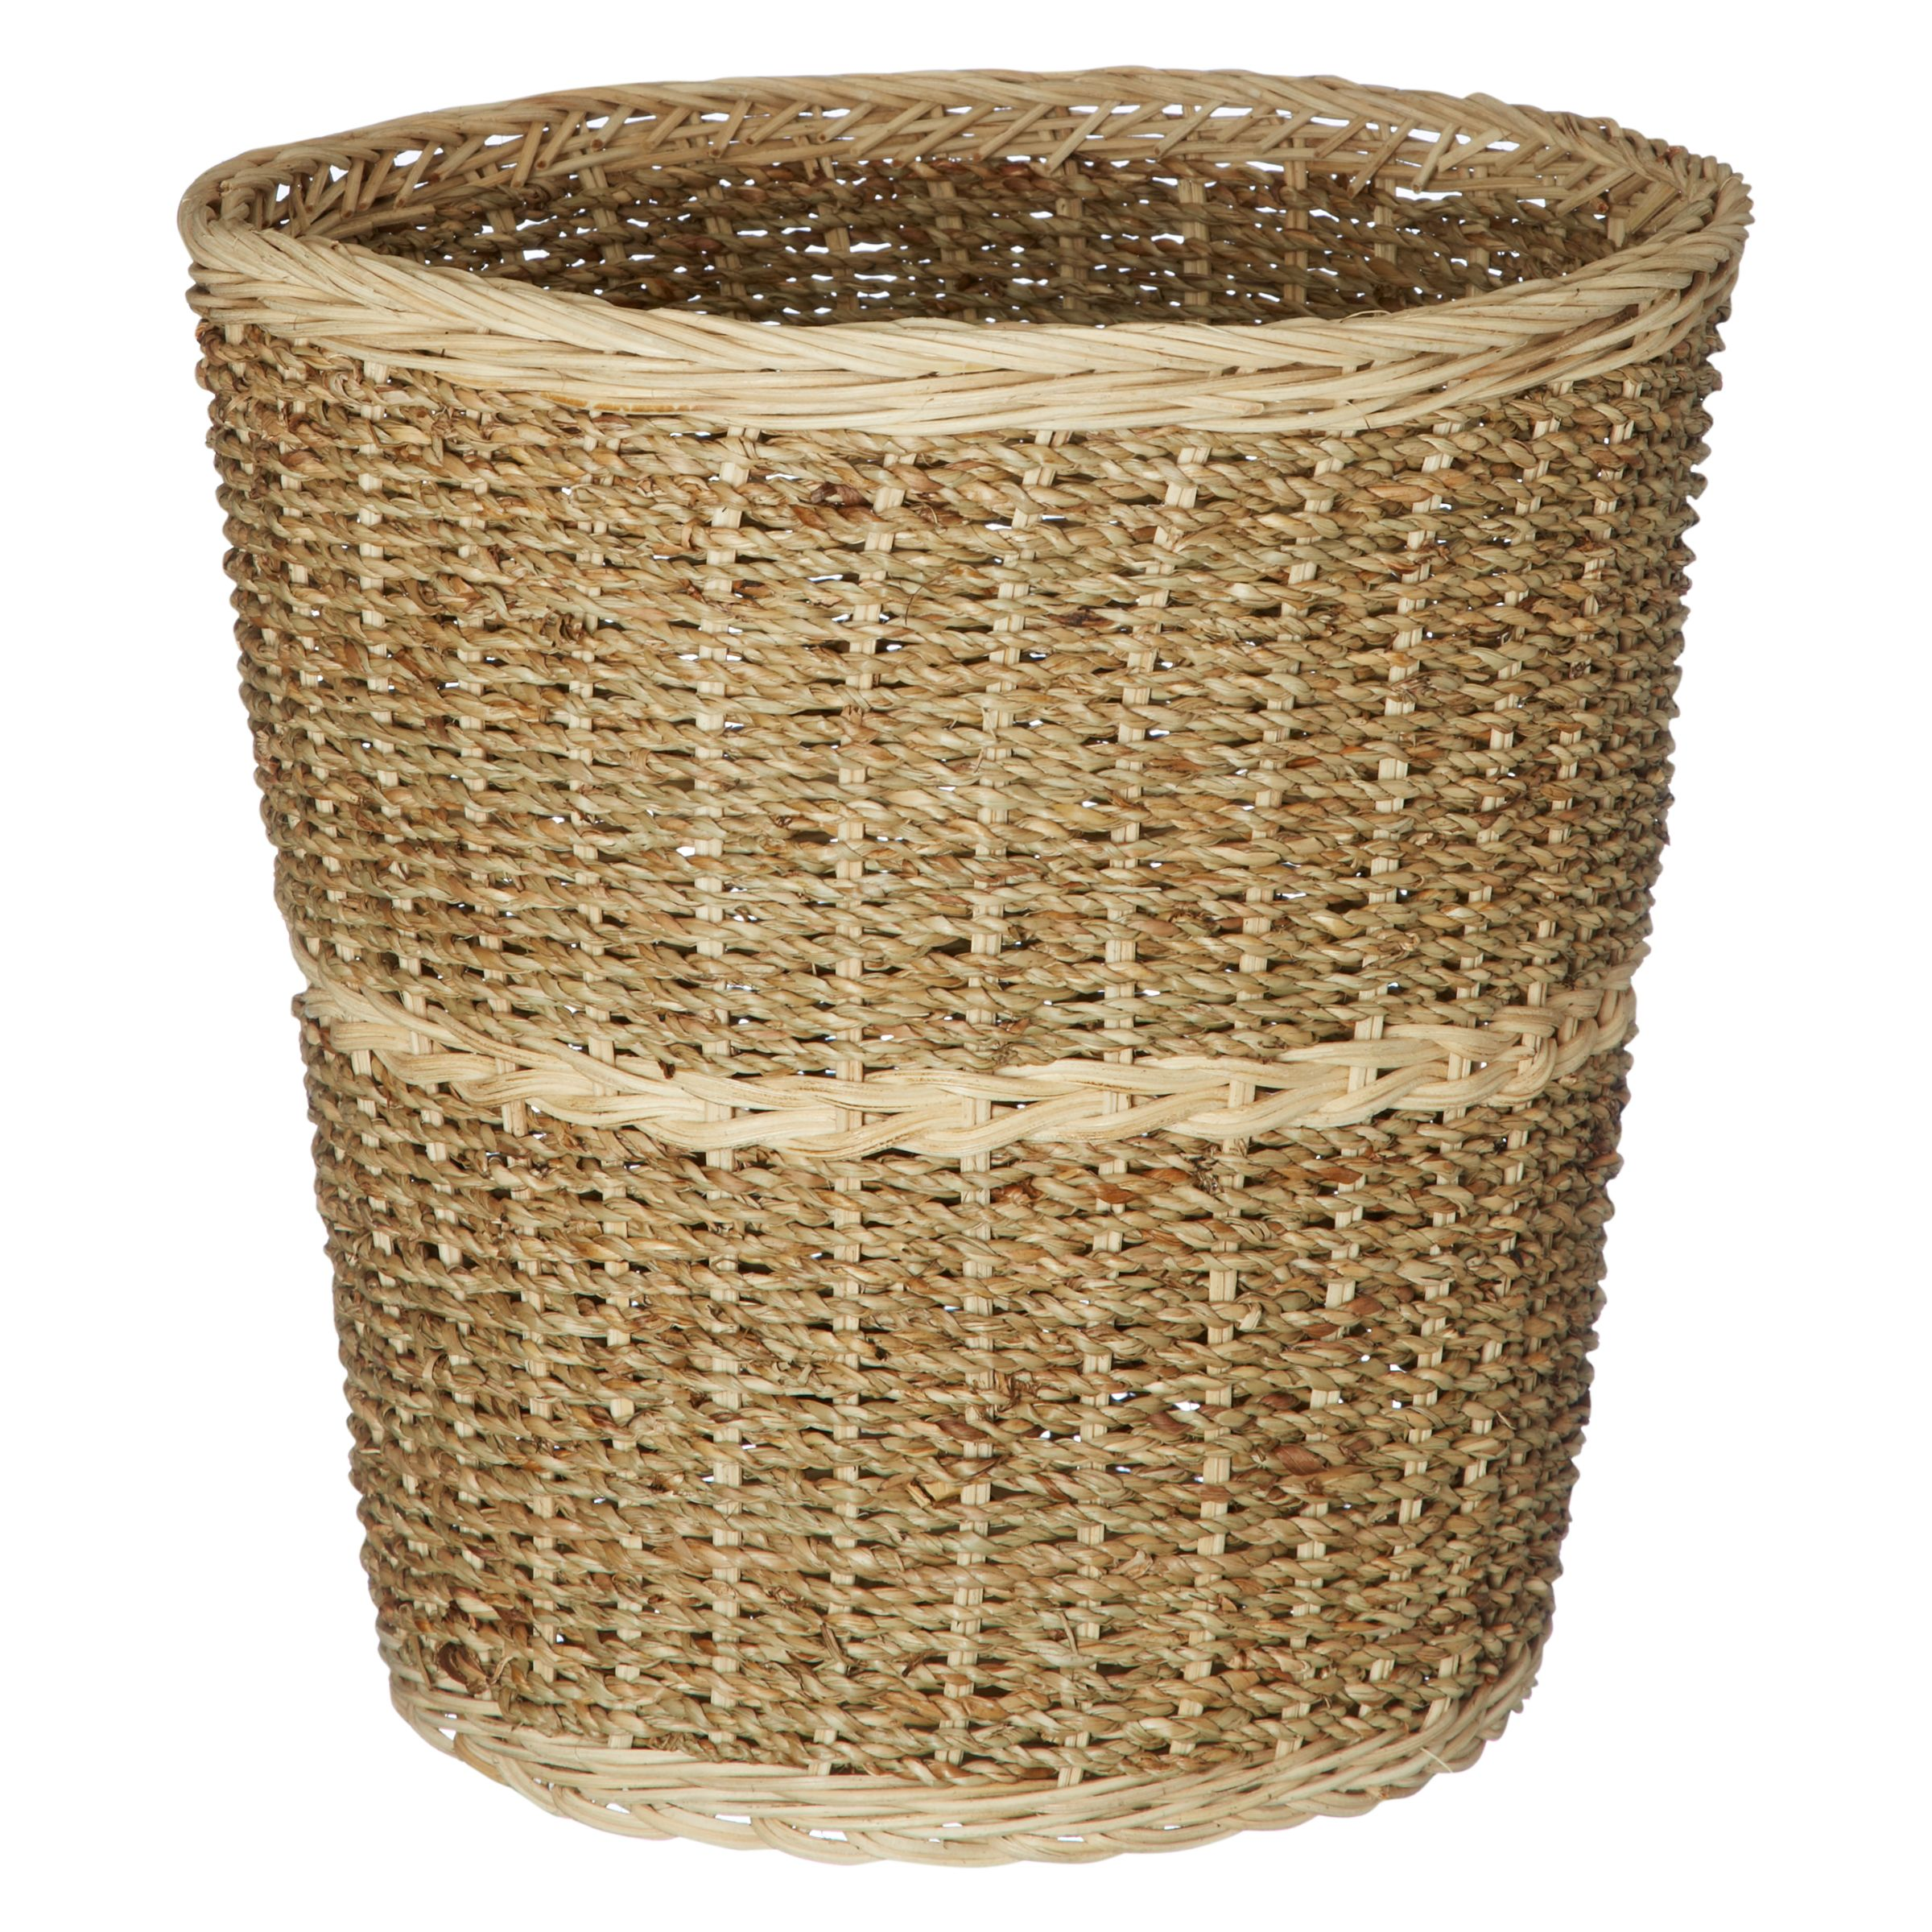 John Lewis Striped Seagrass and Wicker Wastepaper Basket